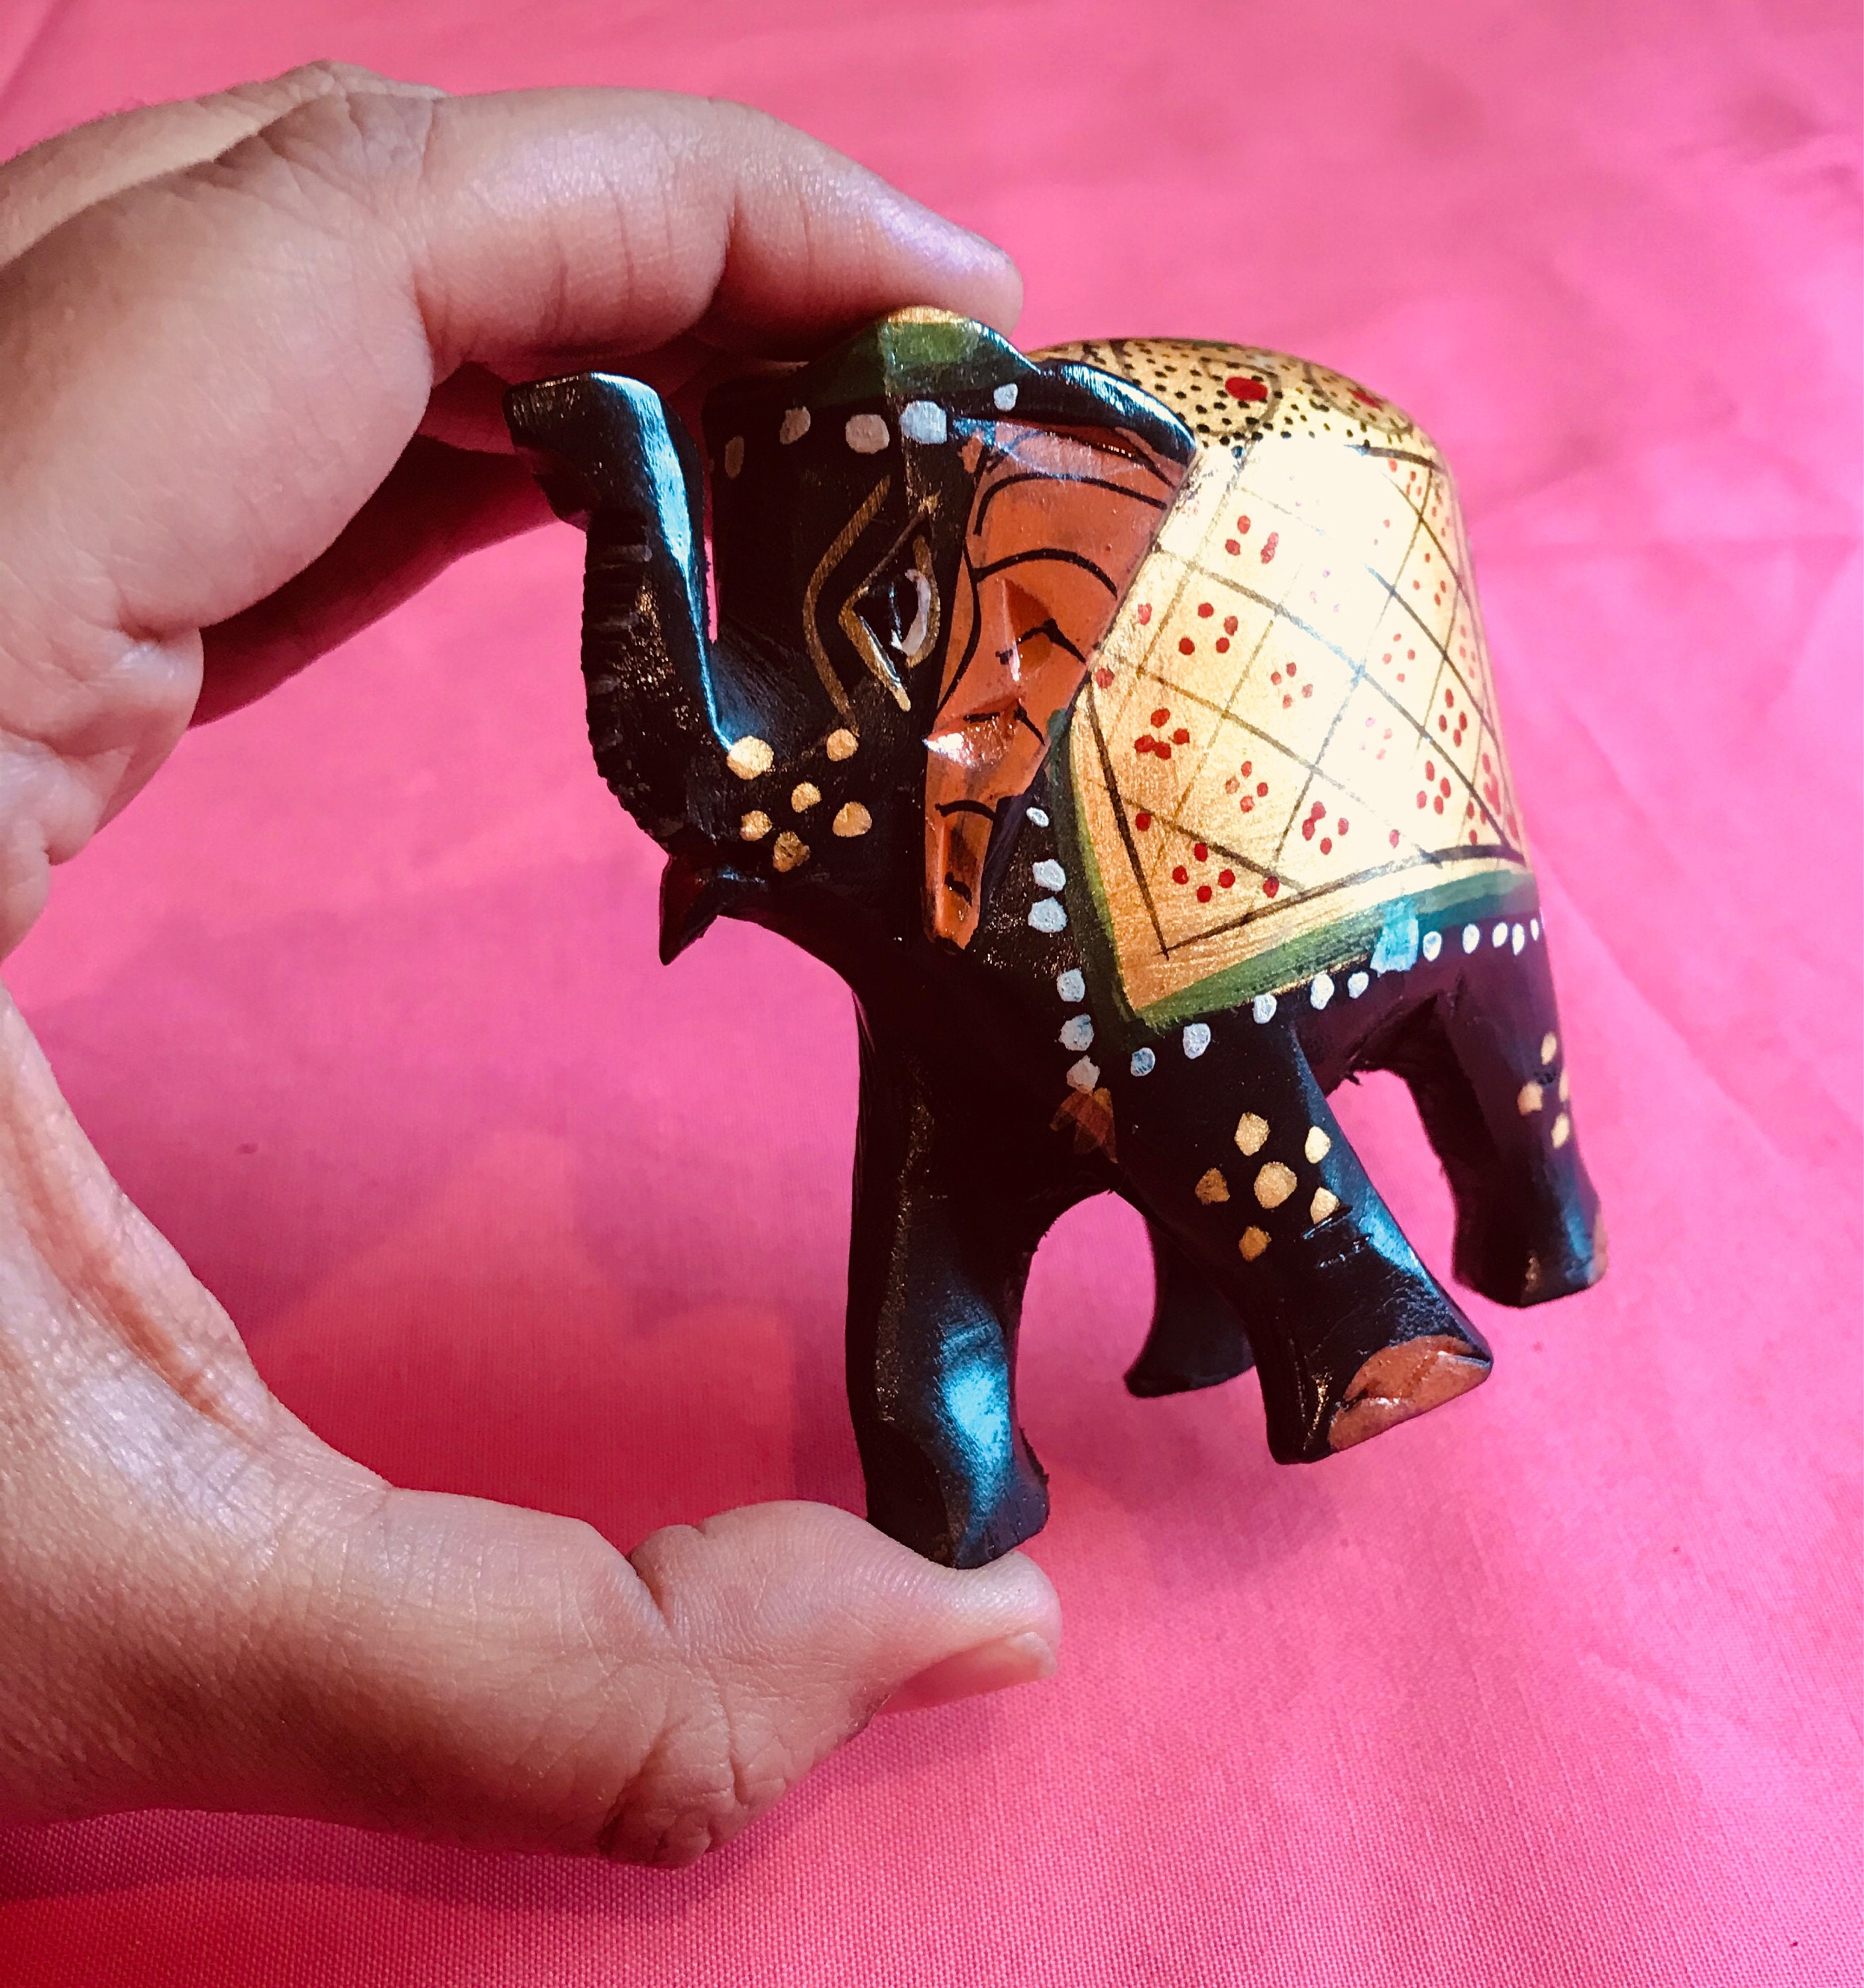 Small Elephant Decor: Small Elephant Statue Hand Painted Wooden For Home Decor